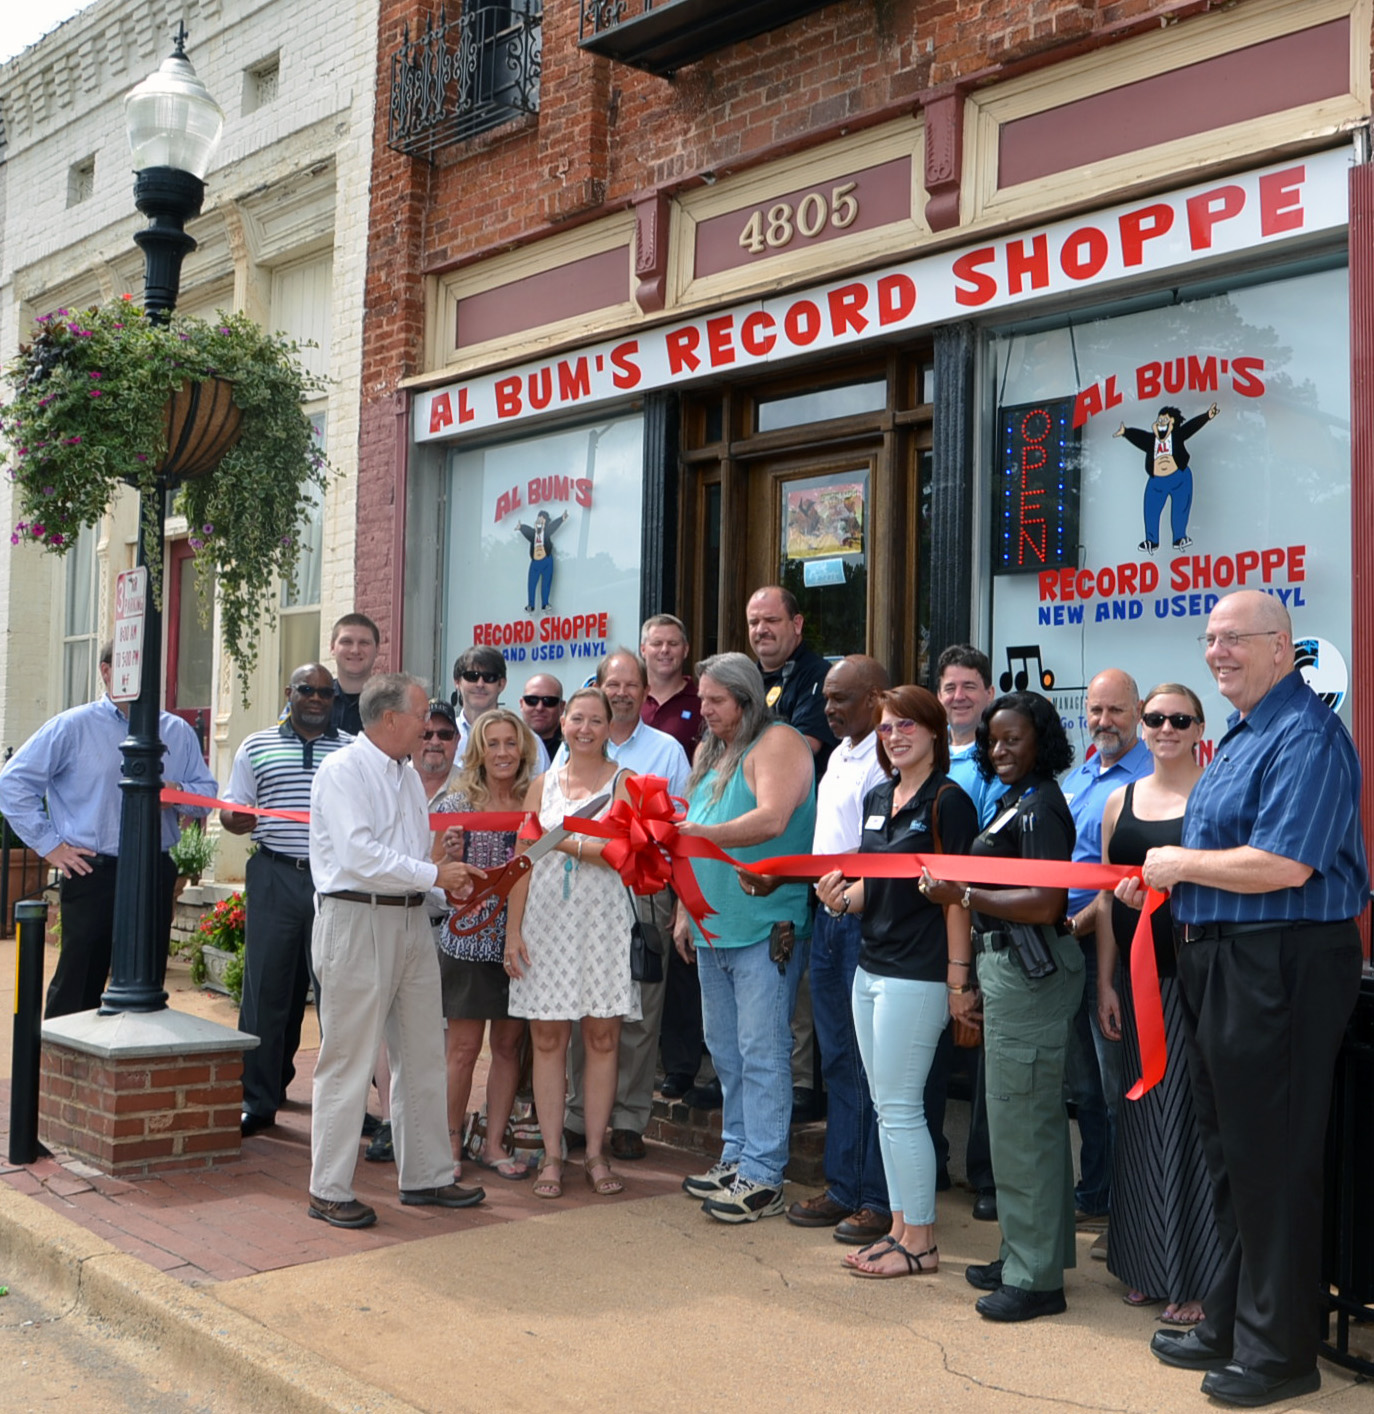 Ribbon Cutting for Al Bum's Record Shoppe photo 2